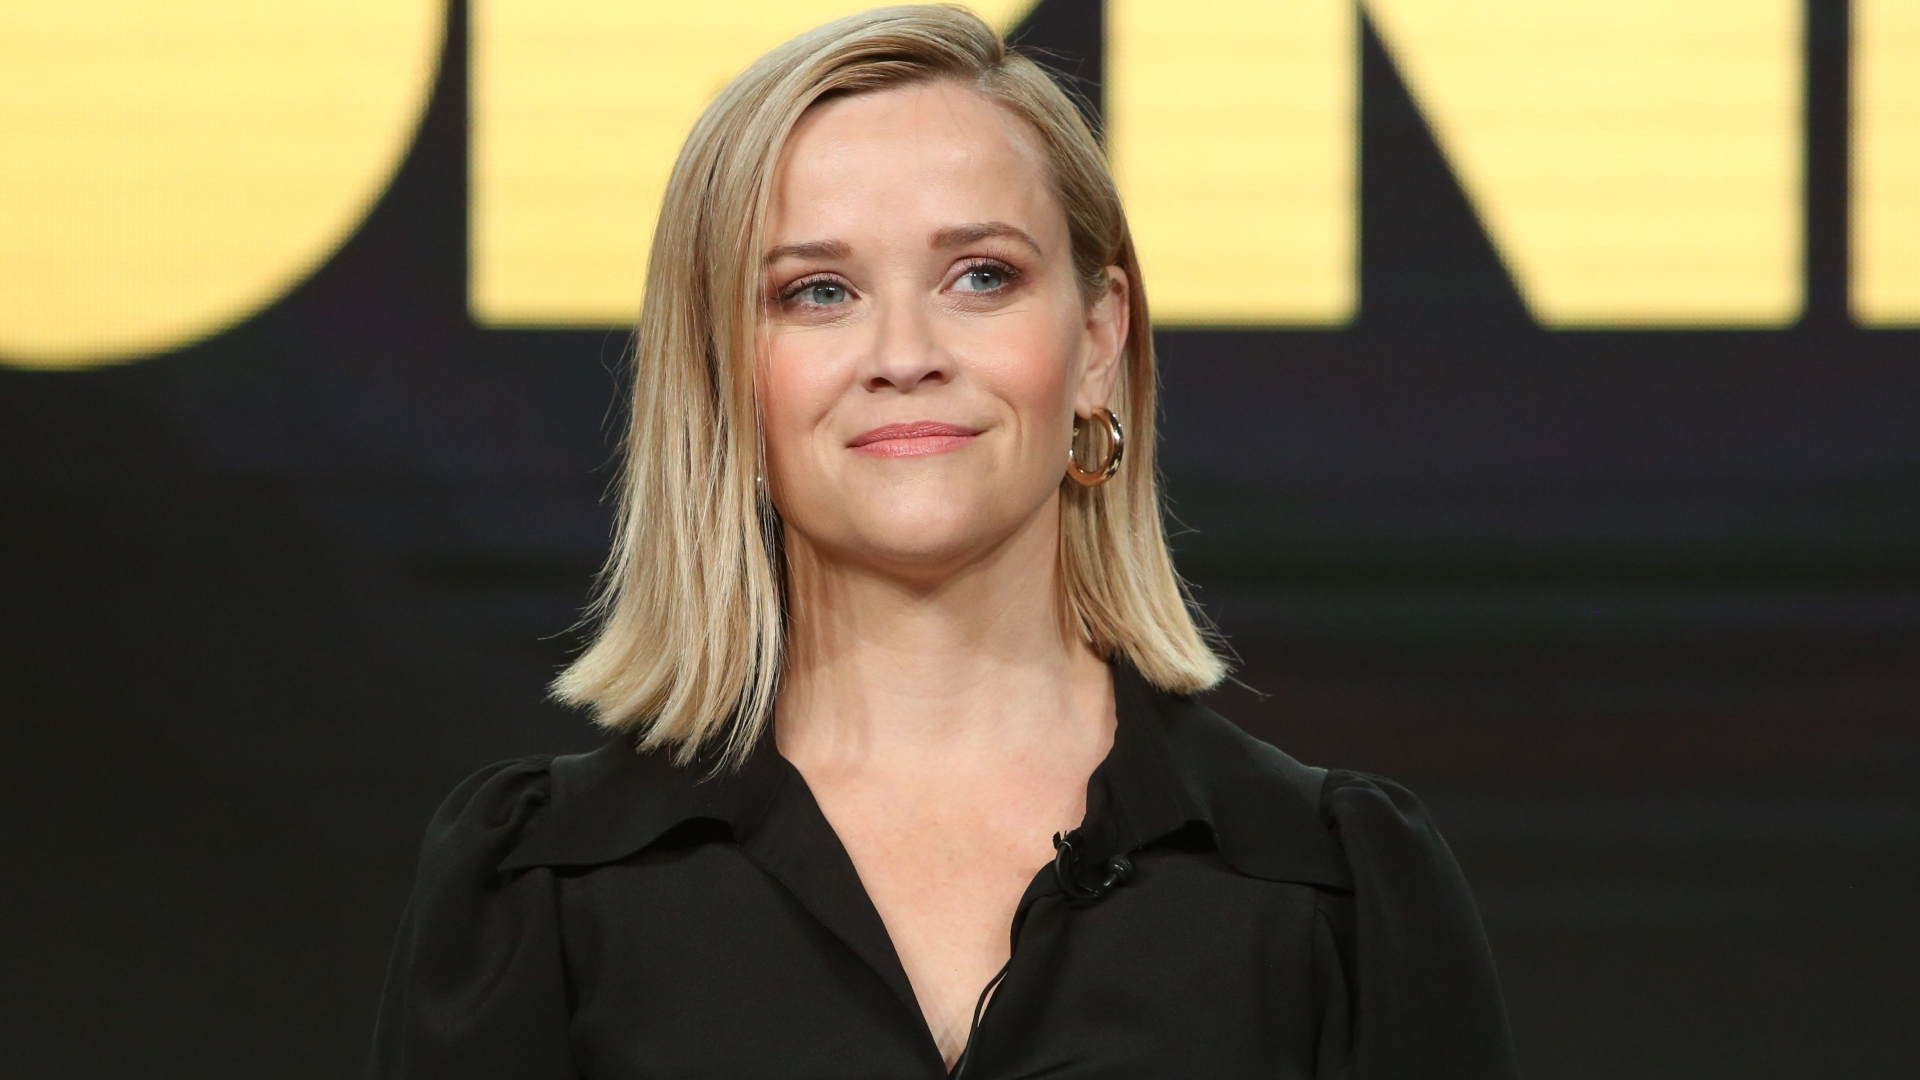 Check Out Reese Witherspoon's New Photo of Son Deacon